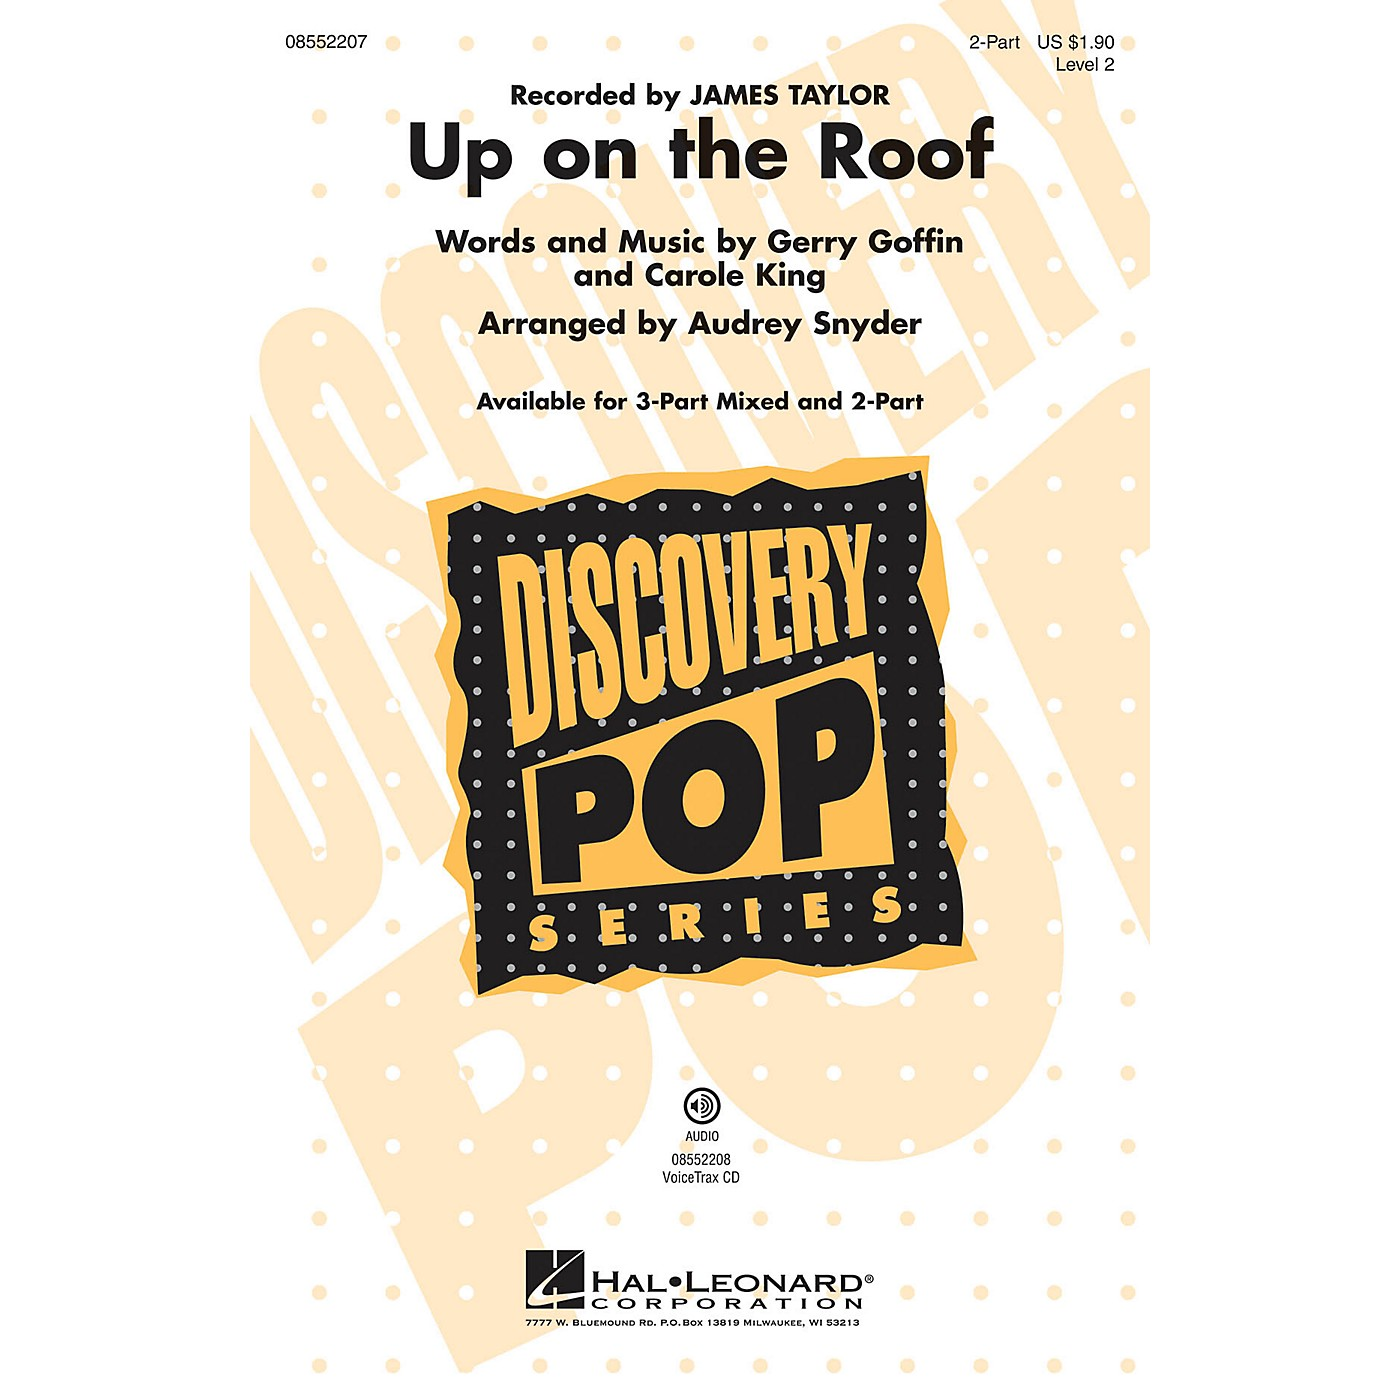 Hal Leonard Up on the Roof 2-Part by James Taylor arranged by Audrey Snyder thumbnail